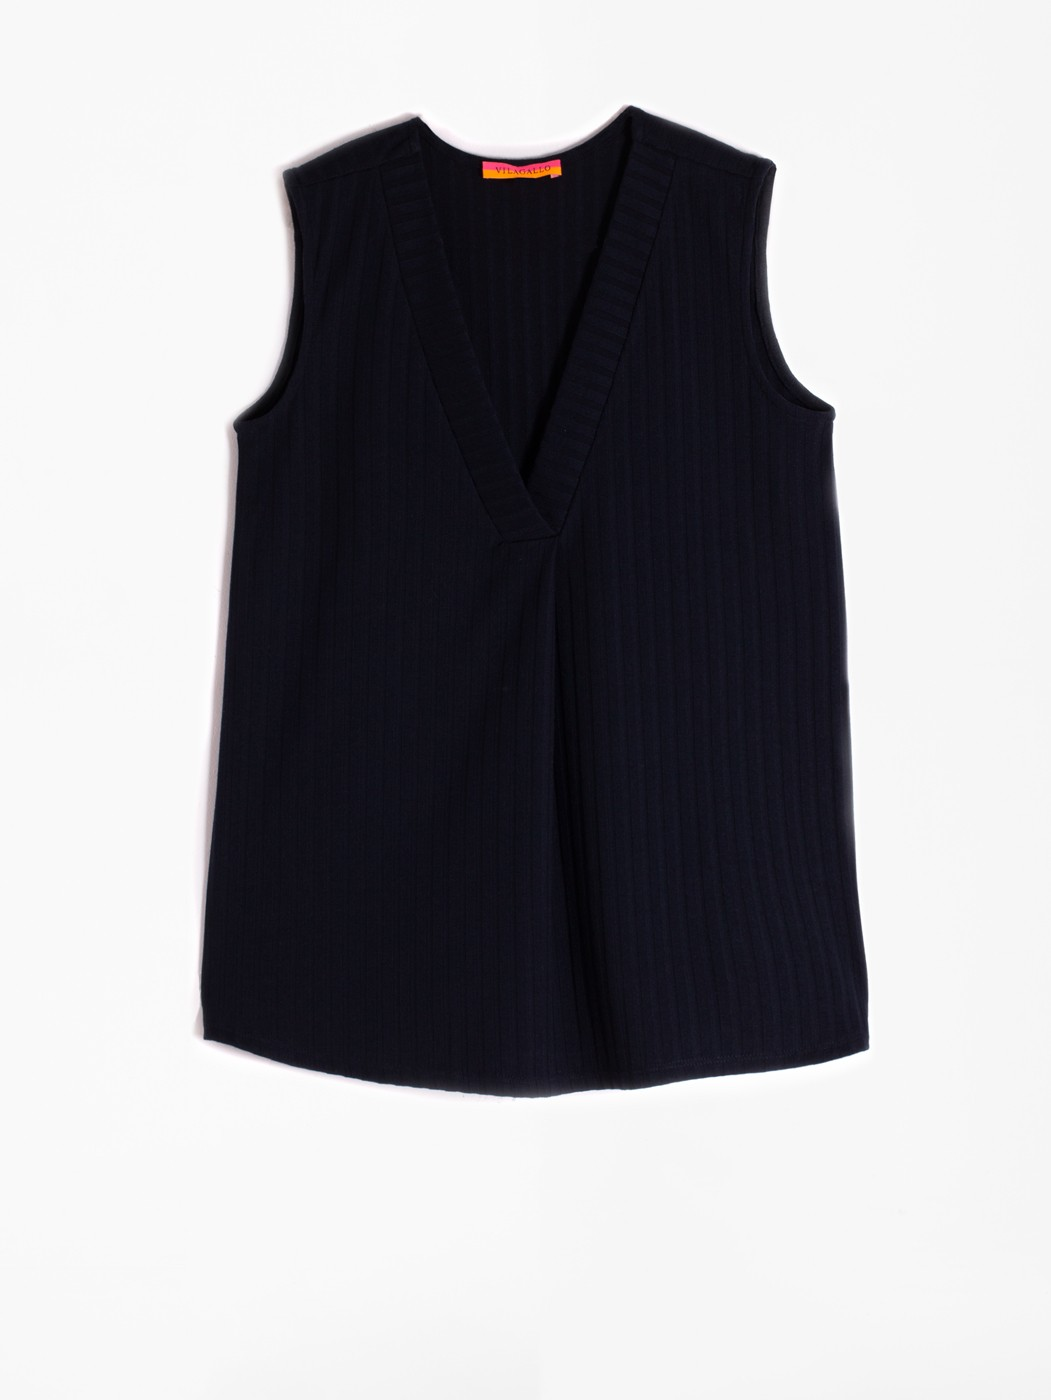 ROMINA T-SHIRT NAVY CANALE